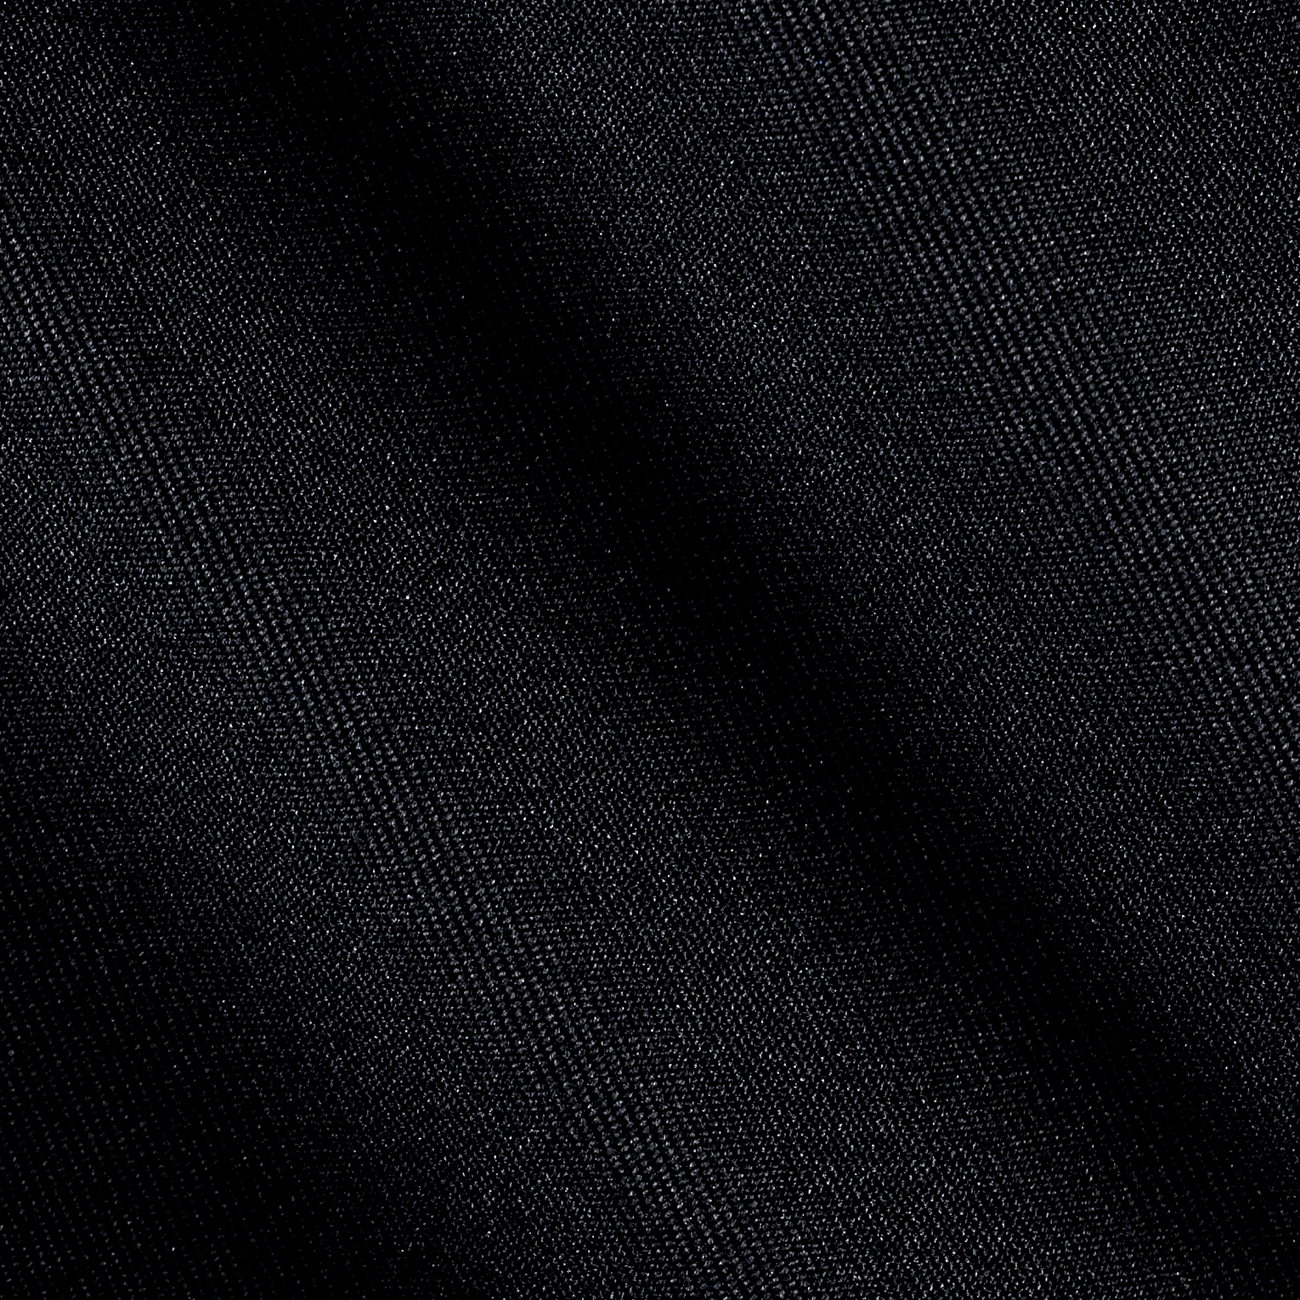 Gabardine Suiting Solid Black Fabric by Ben in USA